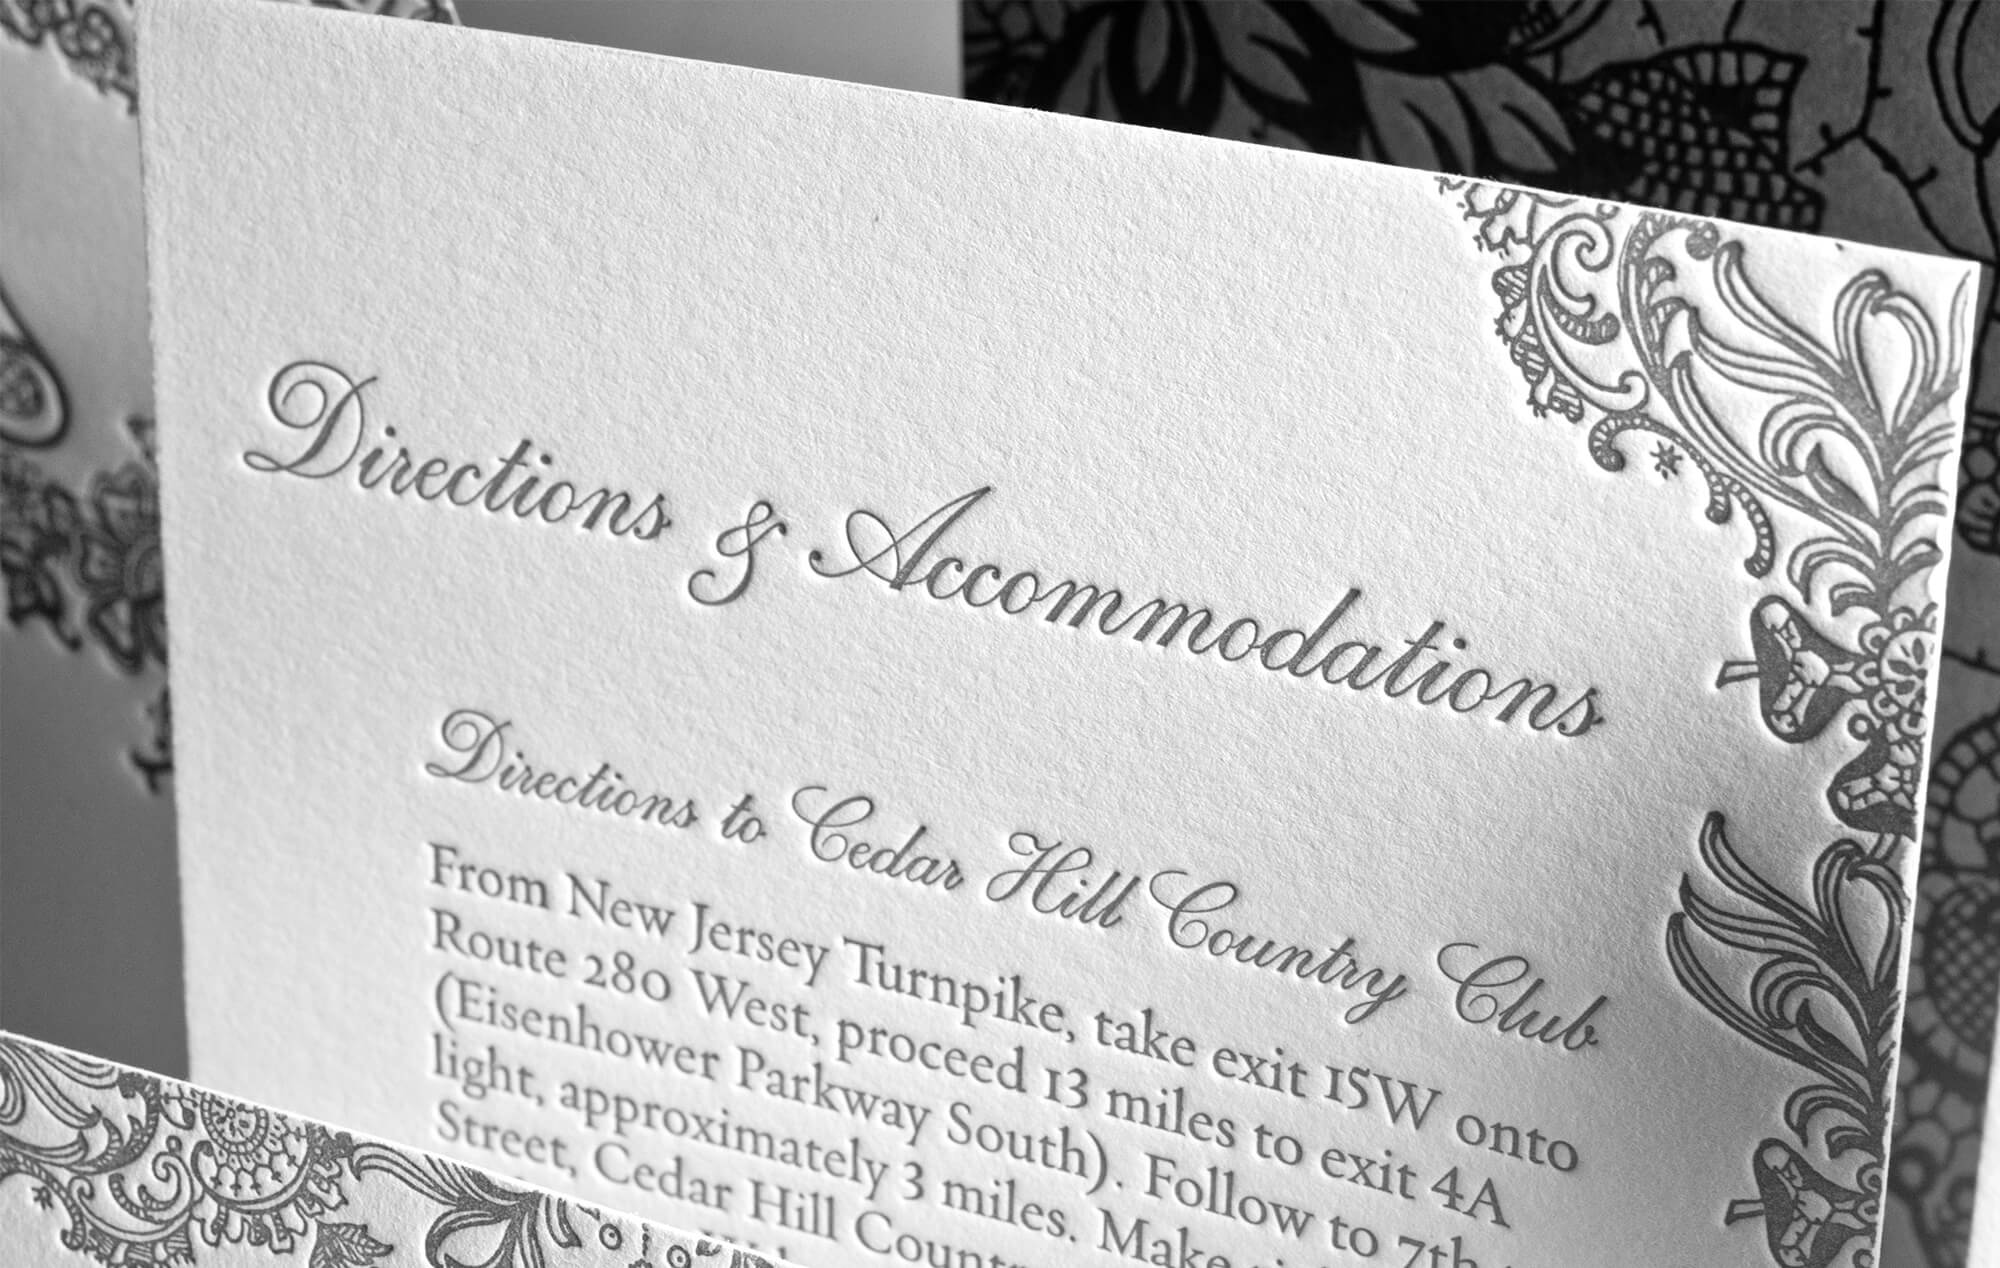 Letterpress directions and accommodations cards